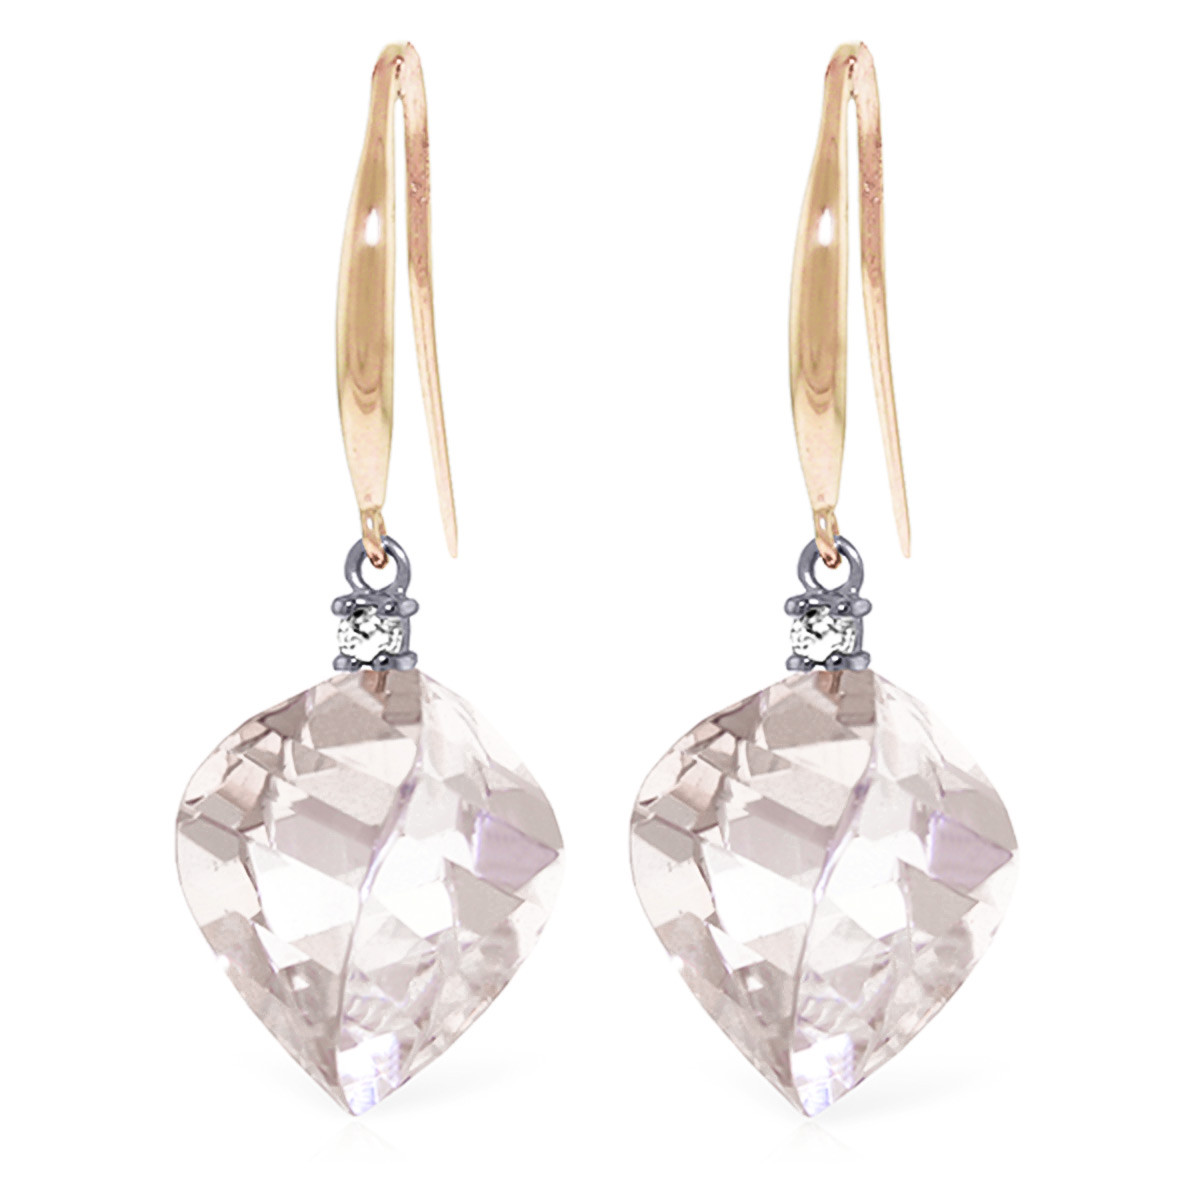 White Topaz Drop Earrings 25.7 ctw in 9ct Rose Gold